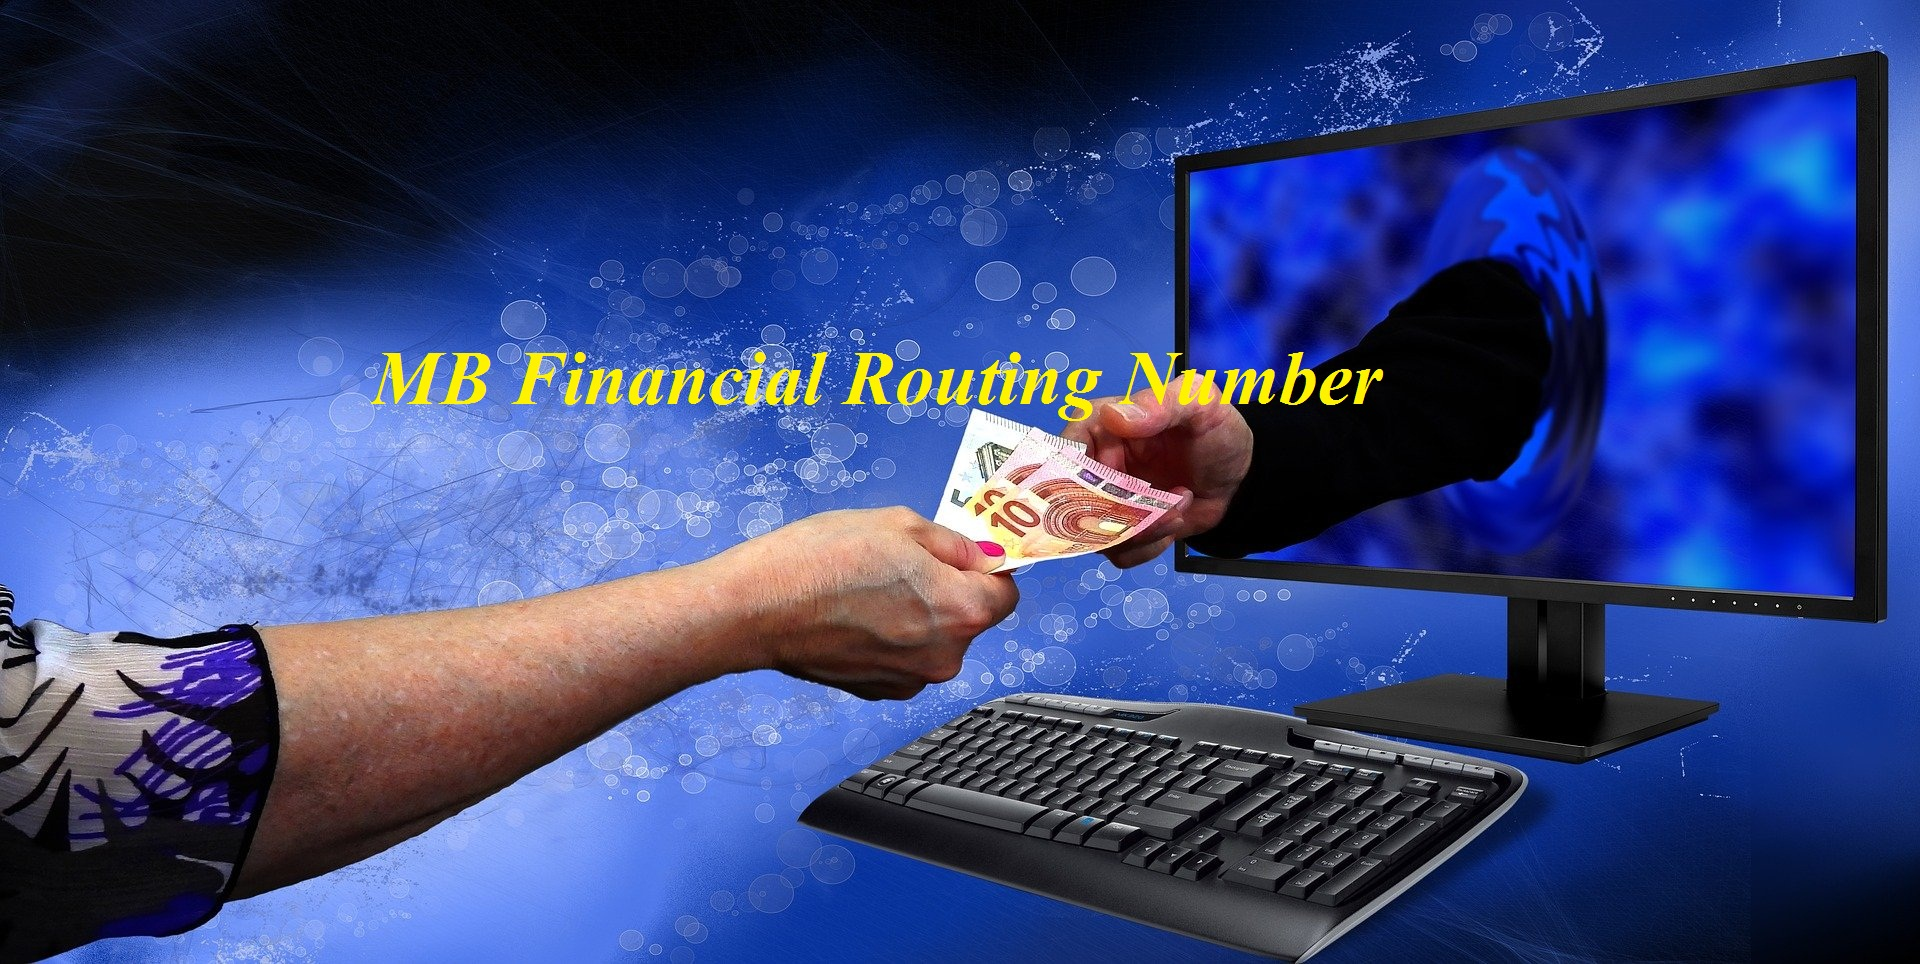 MB Financial Routing Number